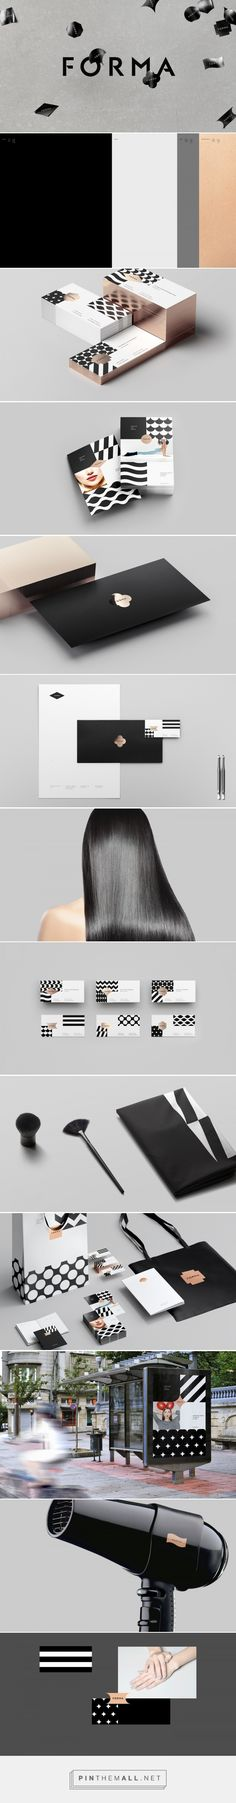 Forma Beauty Shop branding - Mindsparkle Mag - created via https://pinthemall.net